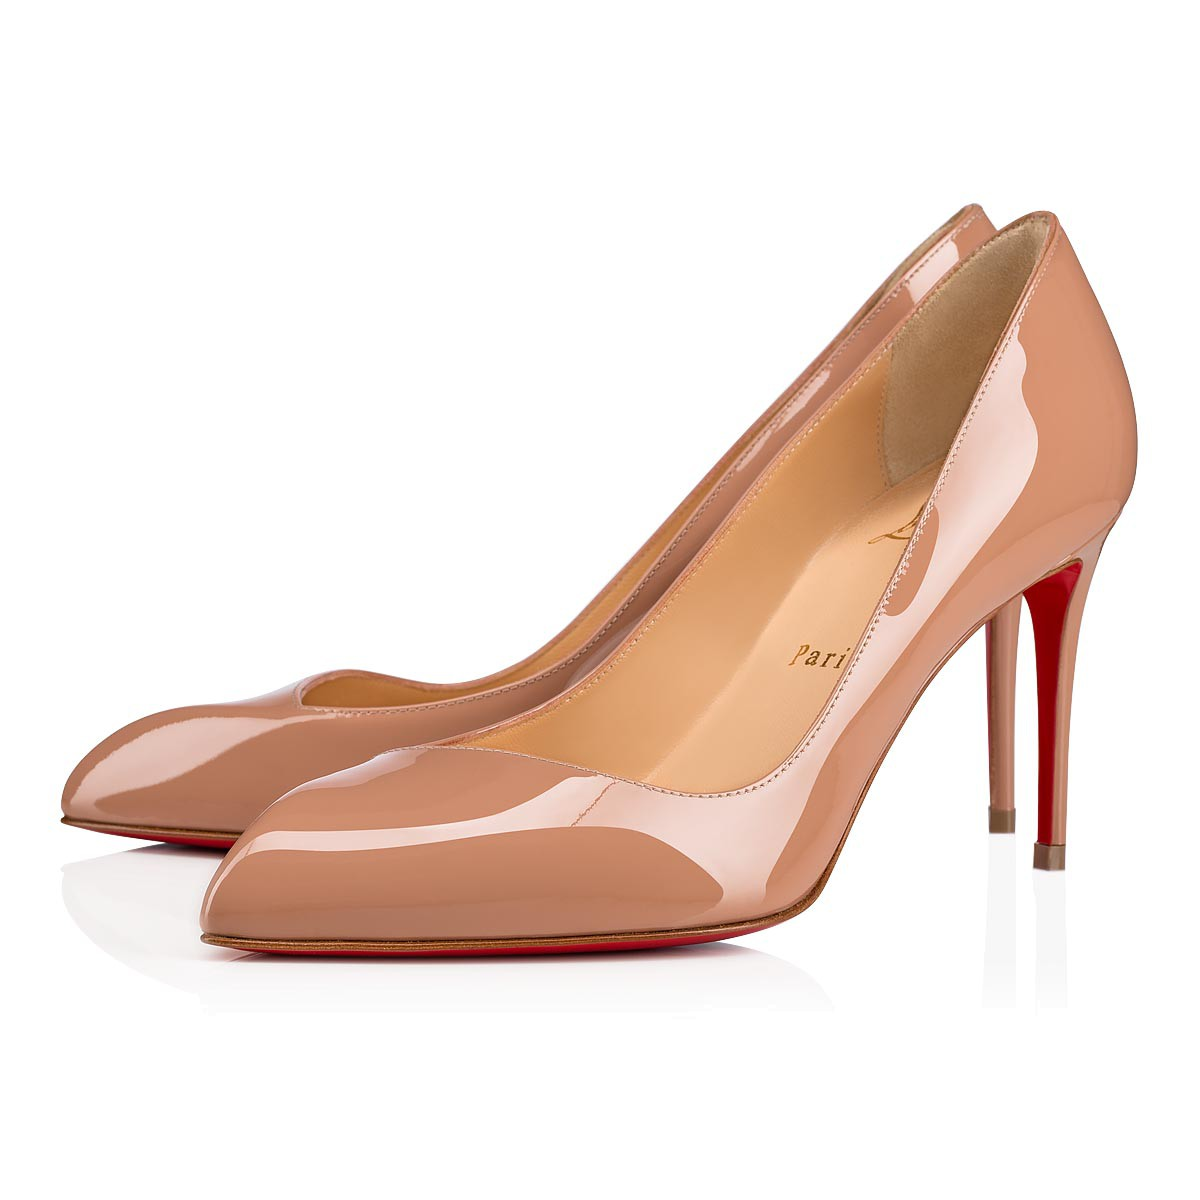 Shoes - Corneille - Christian Louboutin